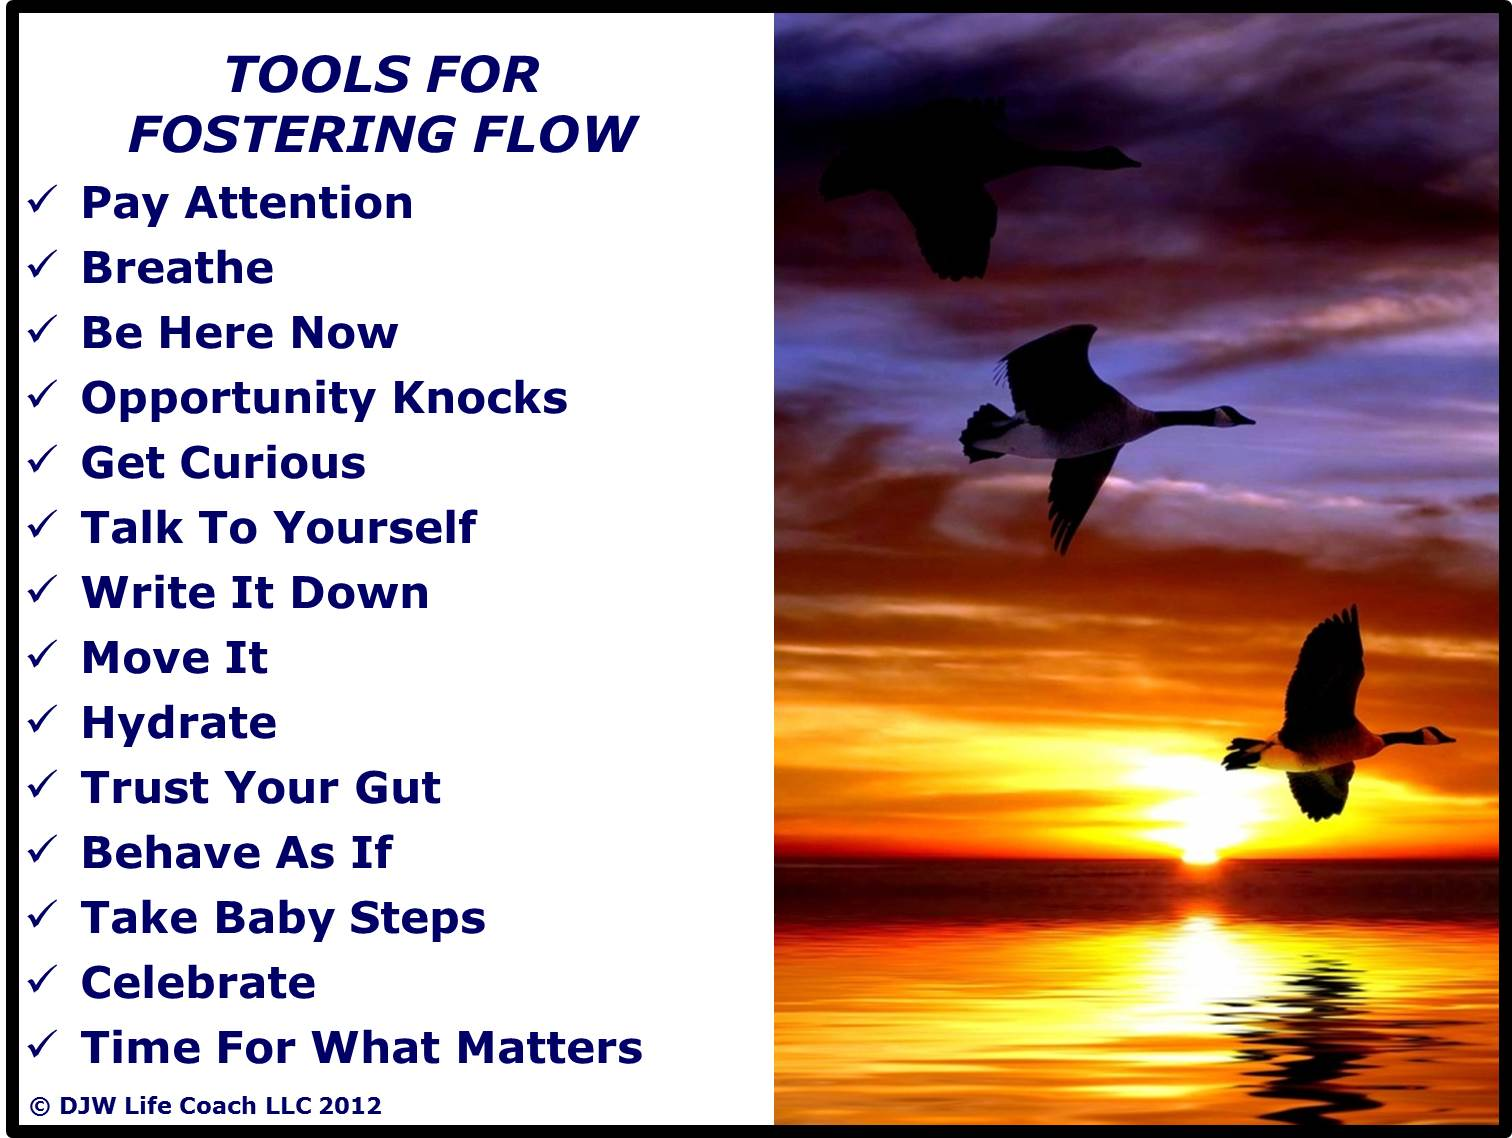 Tools for Fostering Flow